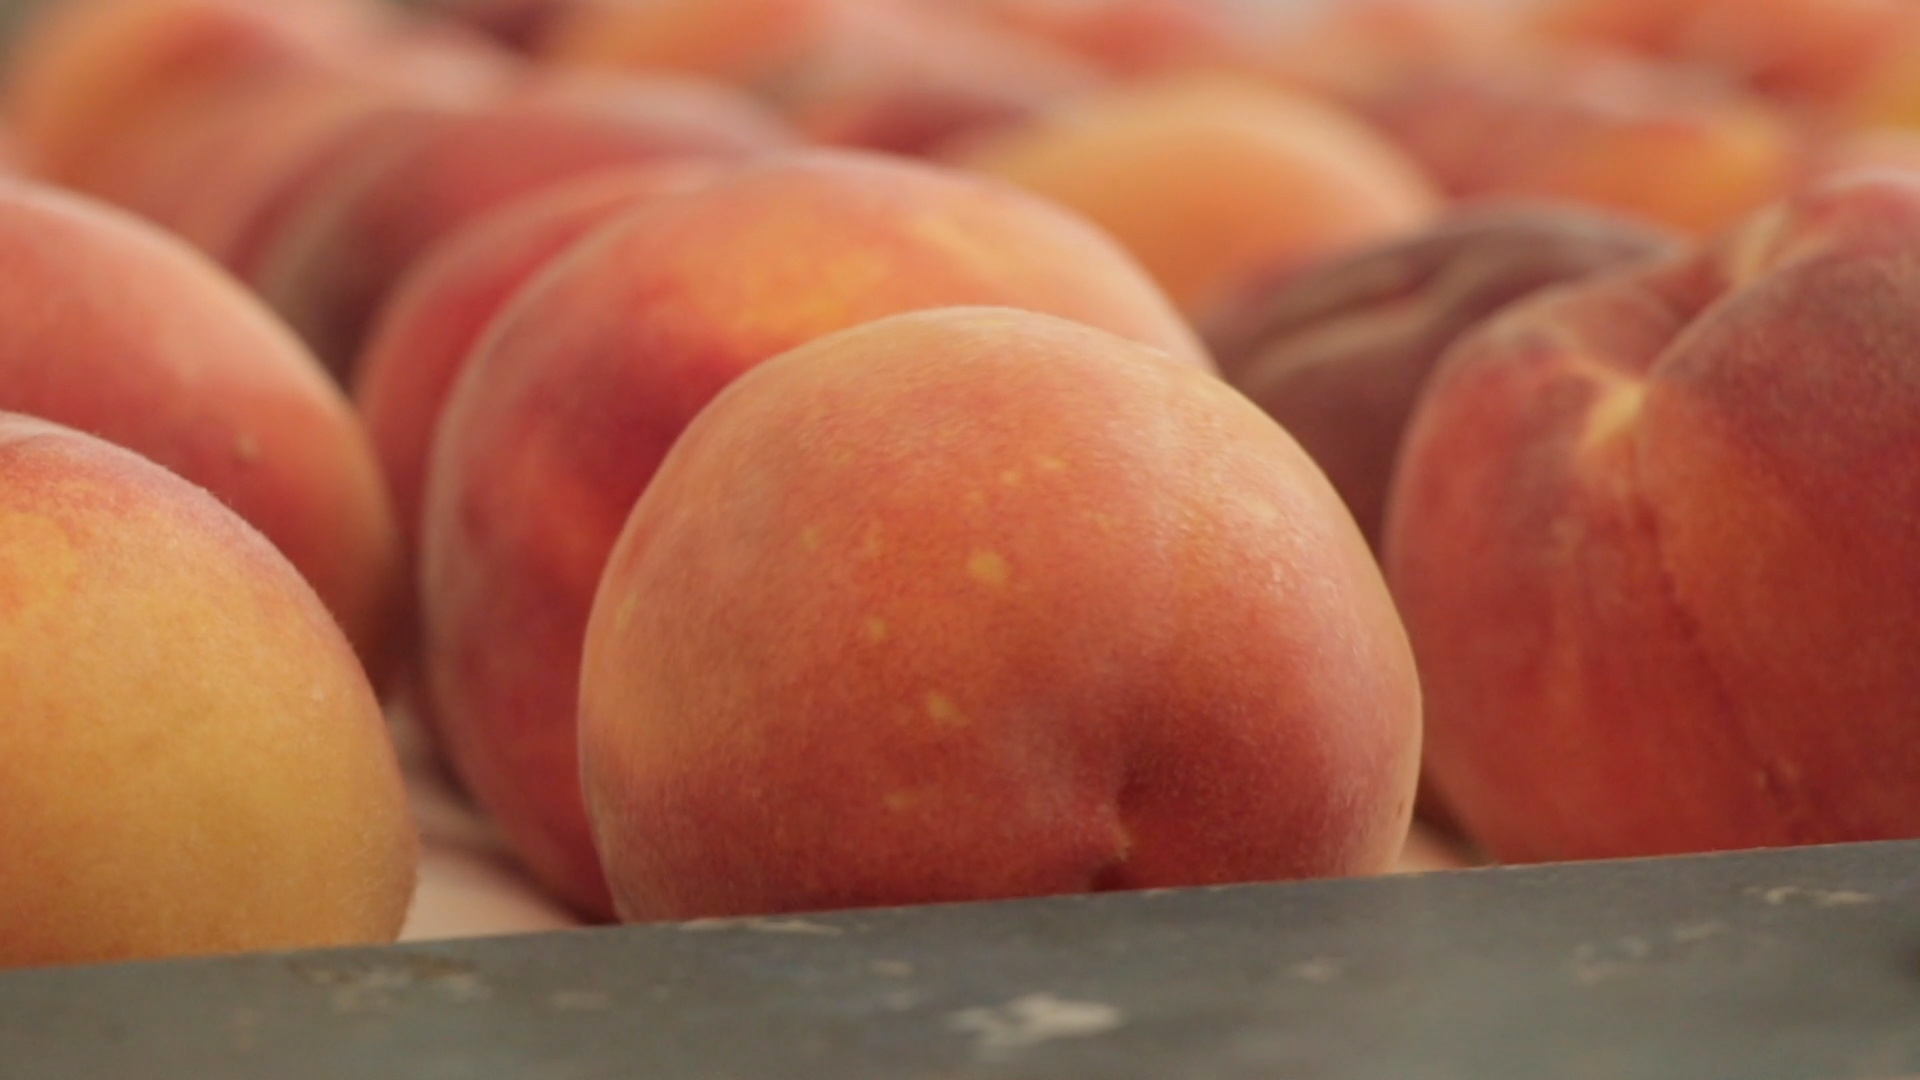 Ever wondered how to choose the best peach?